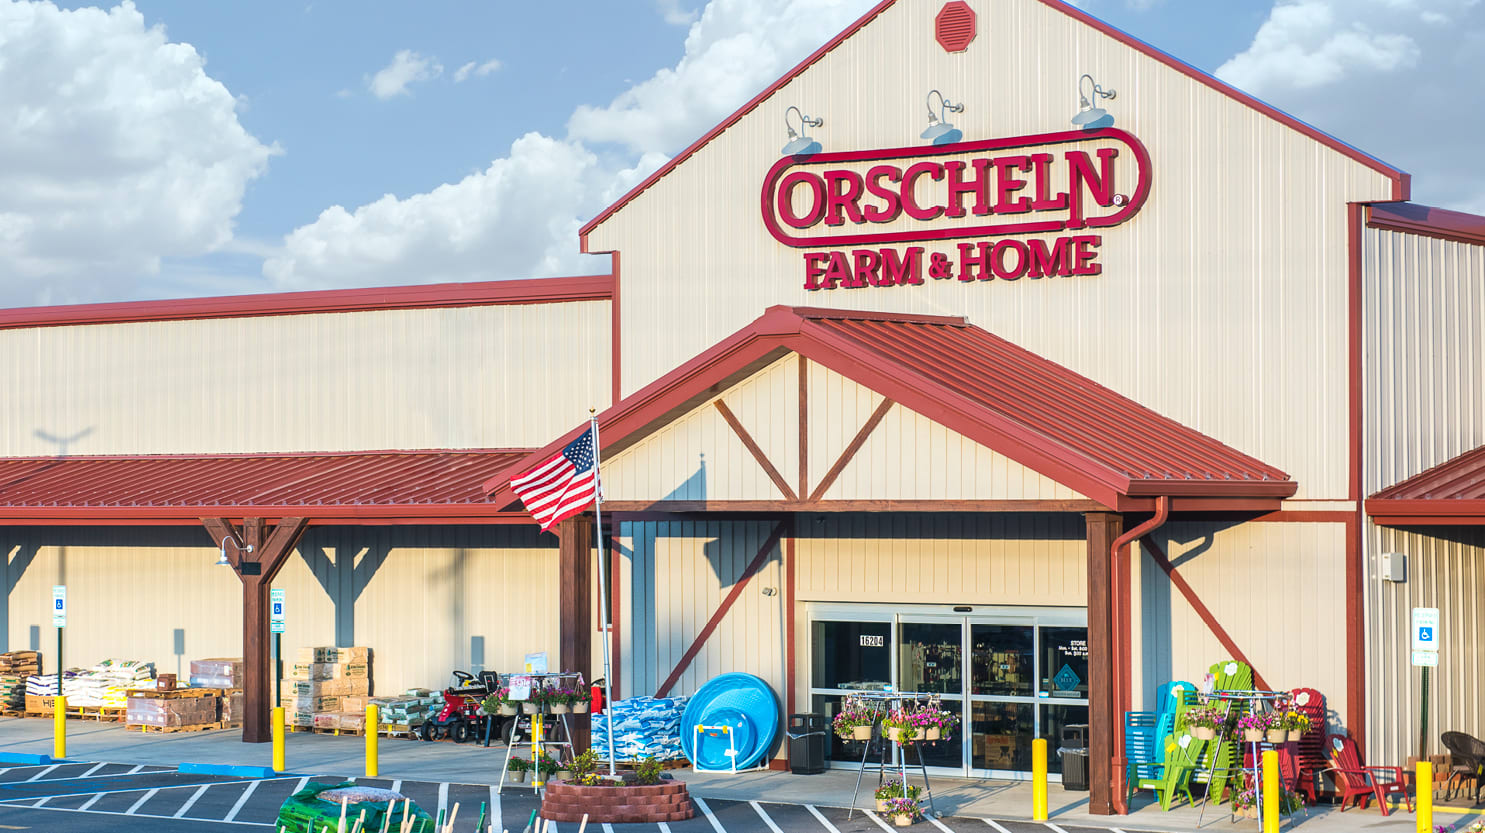 Front view of Orscheln Farm & Home Store in Pryor, Oklahoma 74361